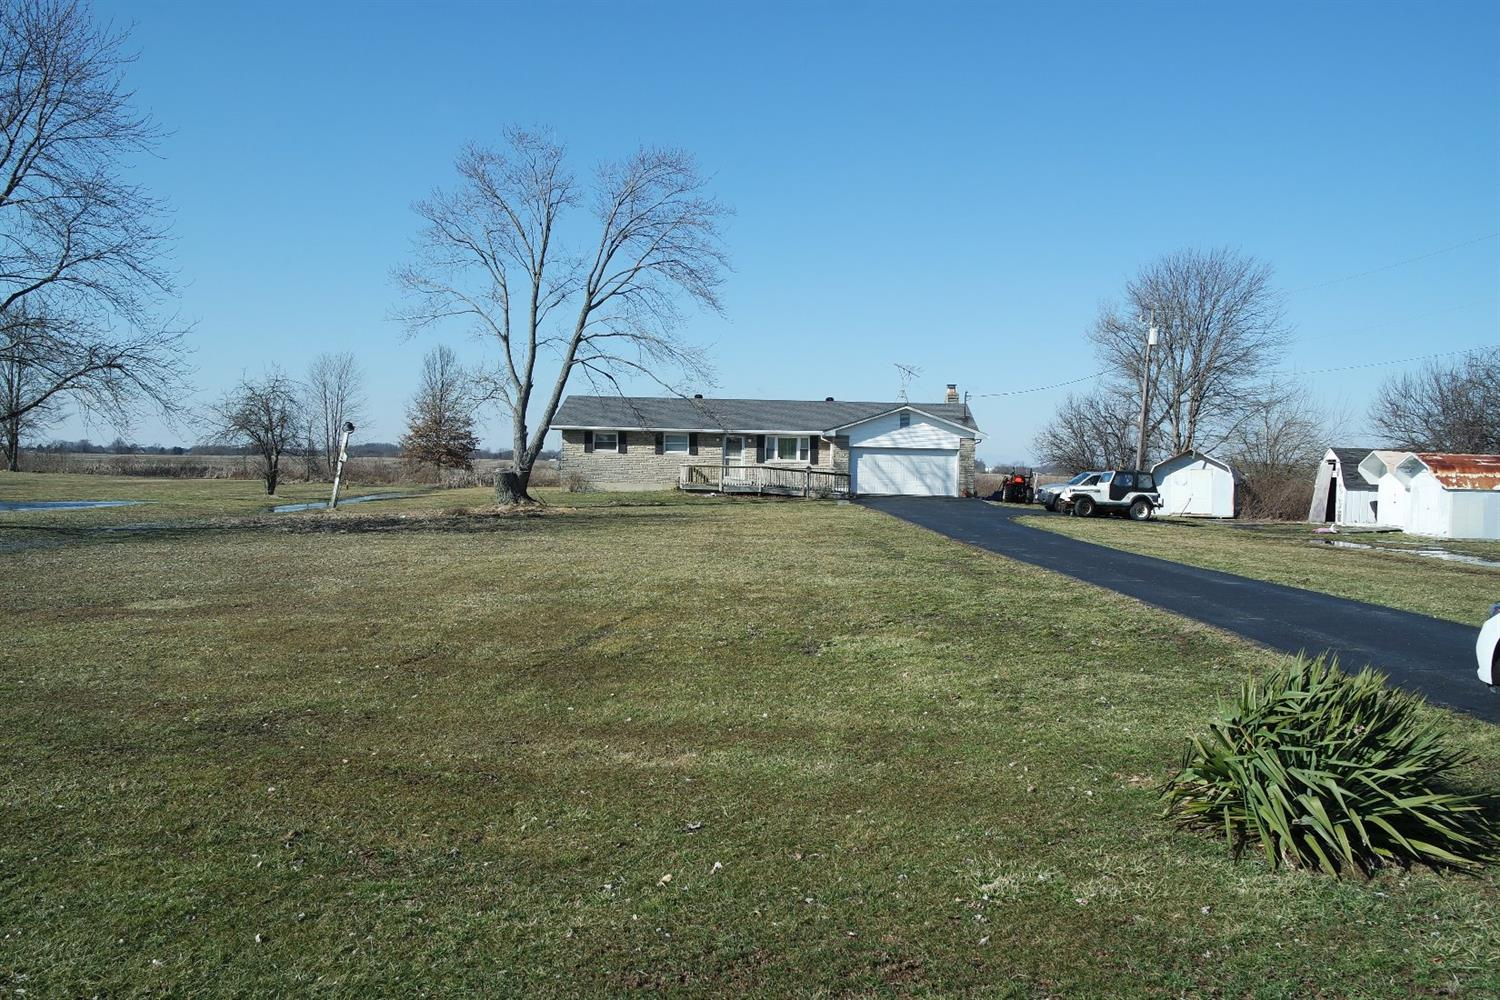 Property for sale at 1431 Sr 28, Blanchester,  OH 45107